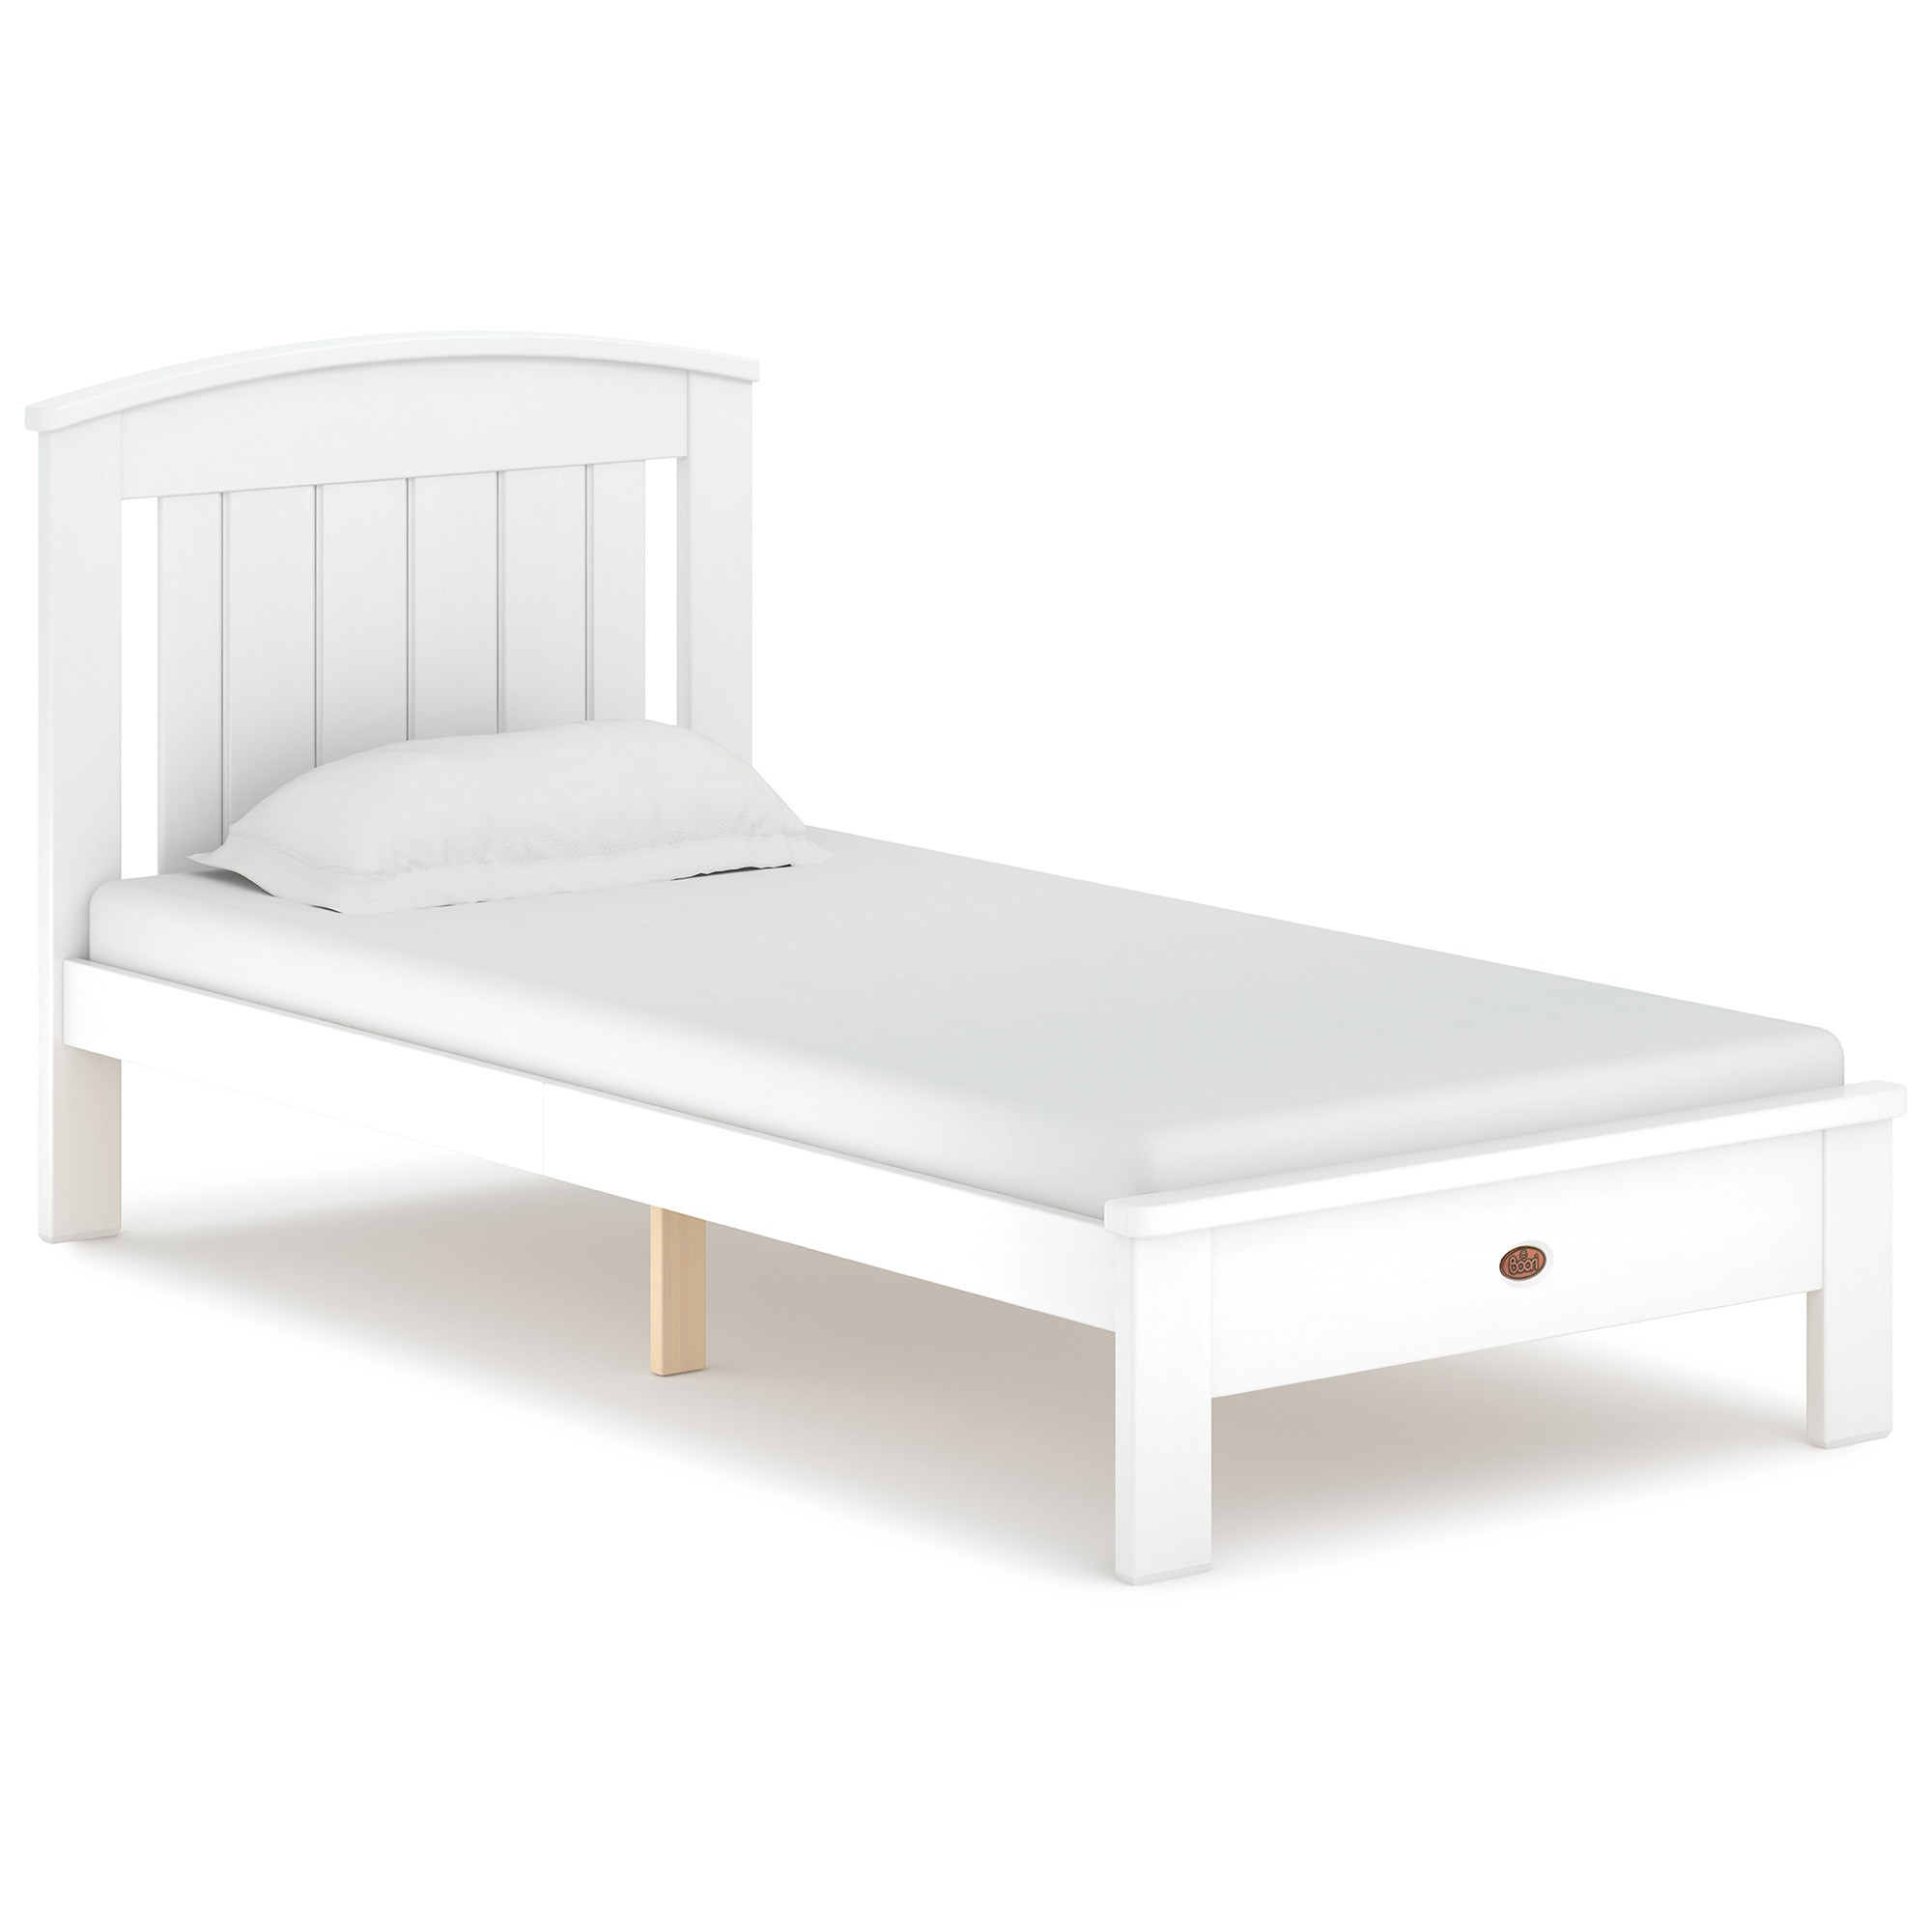 Boori Casa Wooden Bed, Single, Barley White